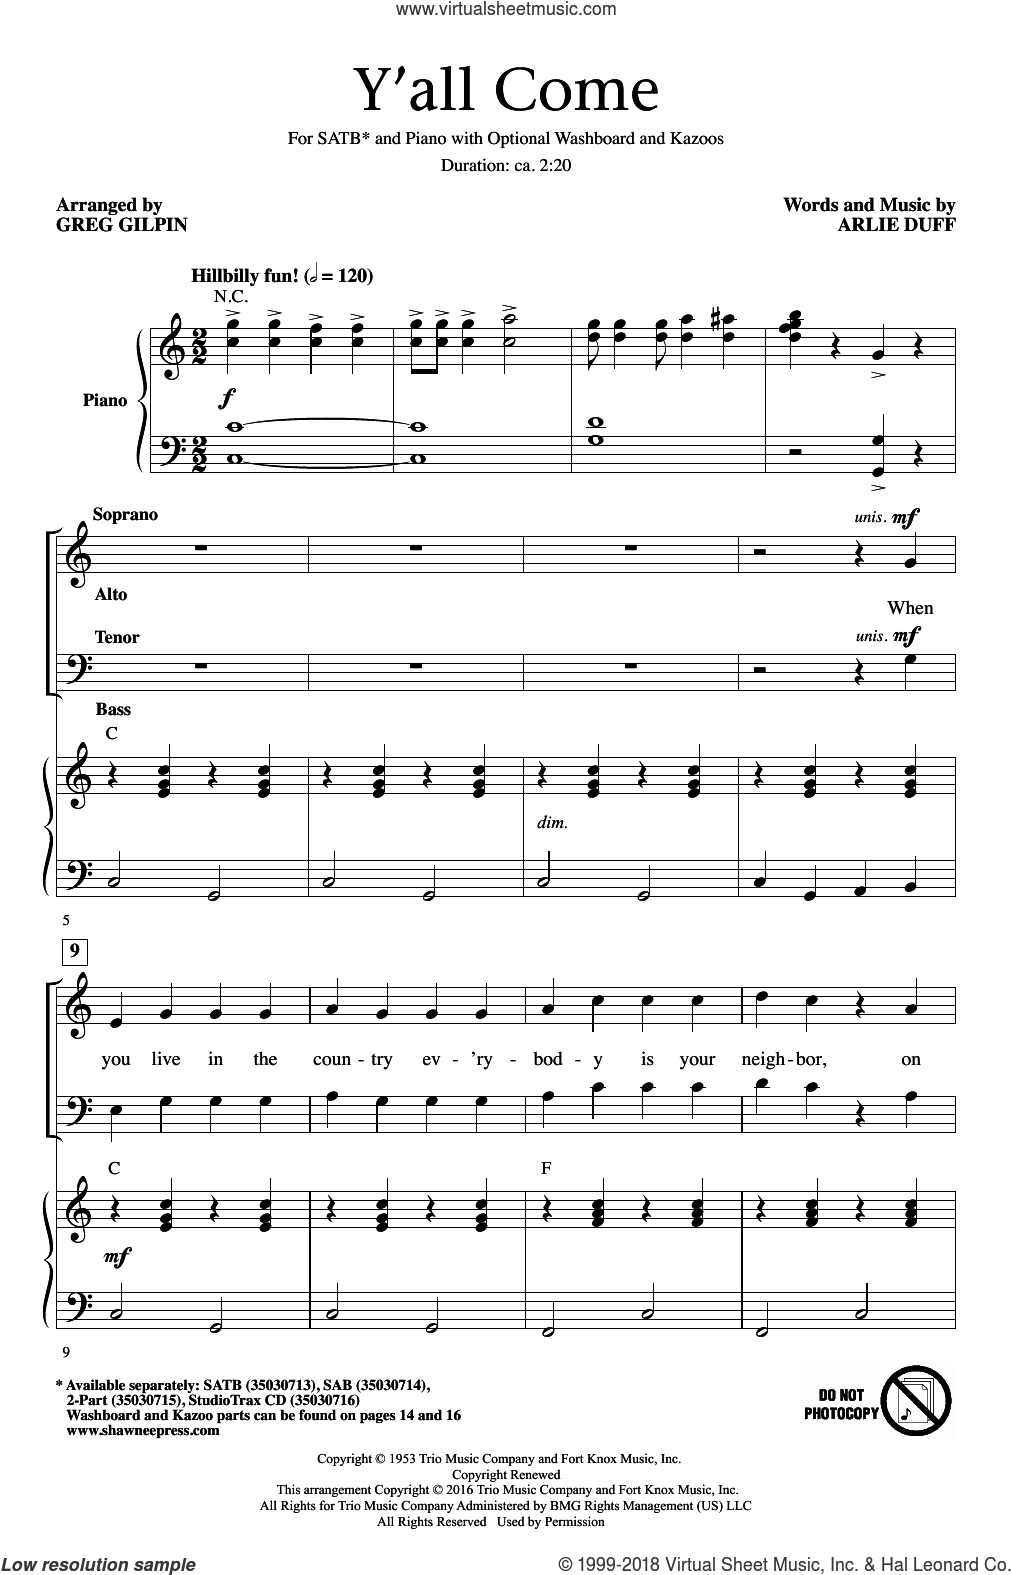 Y'All Come sheet music for choir (SATB) by Greg Gilpin and Arlie Duff. Score Image Preview.